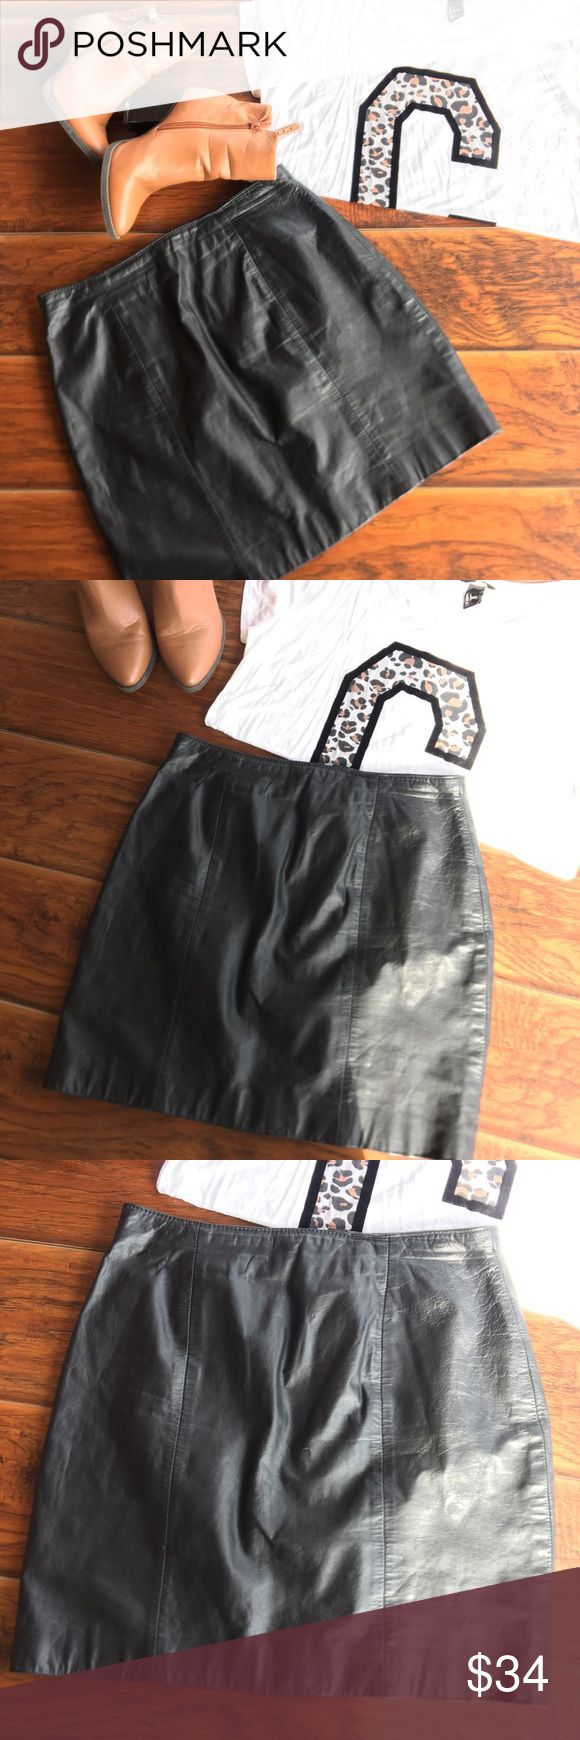 """Wilson's  Leather Black Mini Skirt. Wilson's Leather Black Mini Skirt •Sz: 12 •100% Leather •Pre-owned Good  condition. •zipper in the back part  Approx. measurements laying flat down and in inches: Waist: 15"""" Length: 17.5"""" Leg opening:19"""" Wilsons Leather Skirts Mini"""